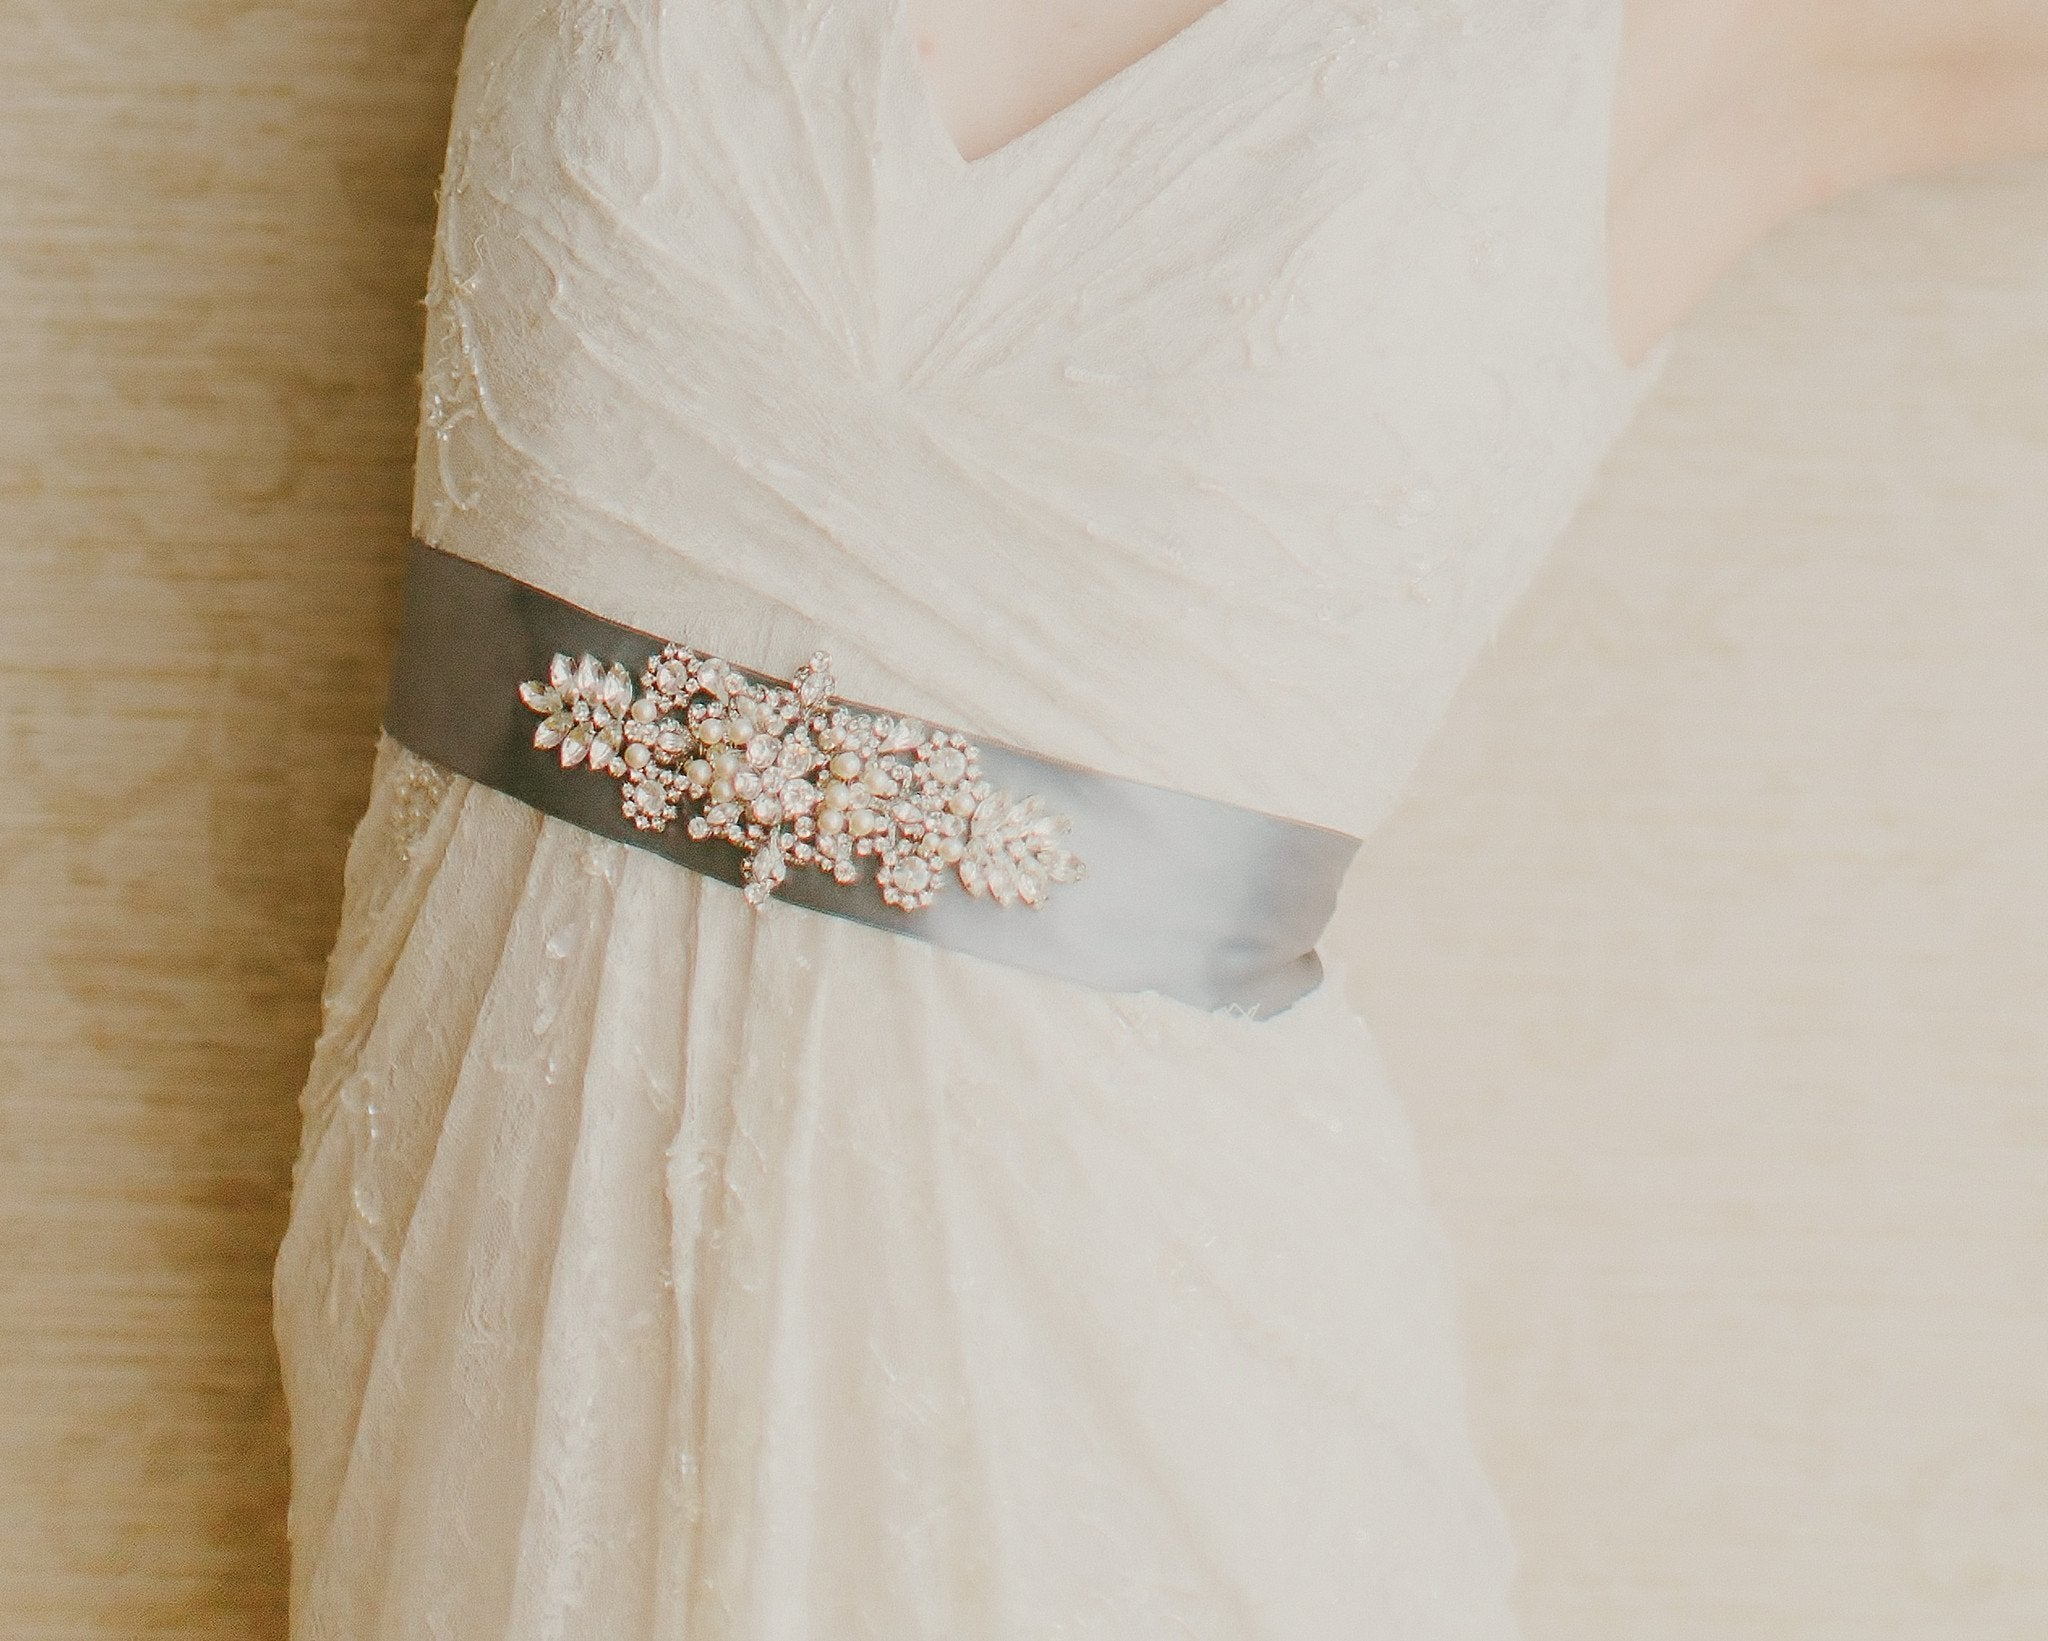 Vintage Side Headpieces - Hand Embellished Wedding Gown Sash, Giorgia